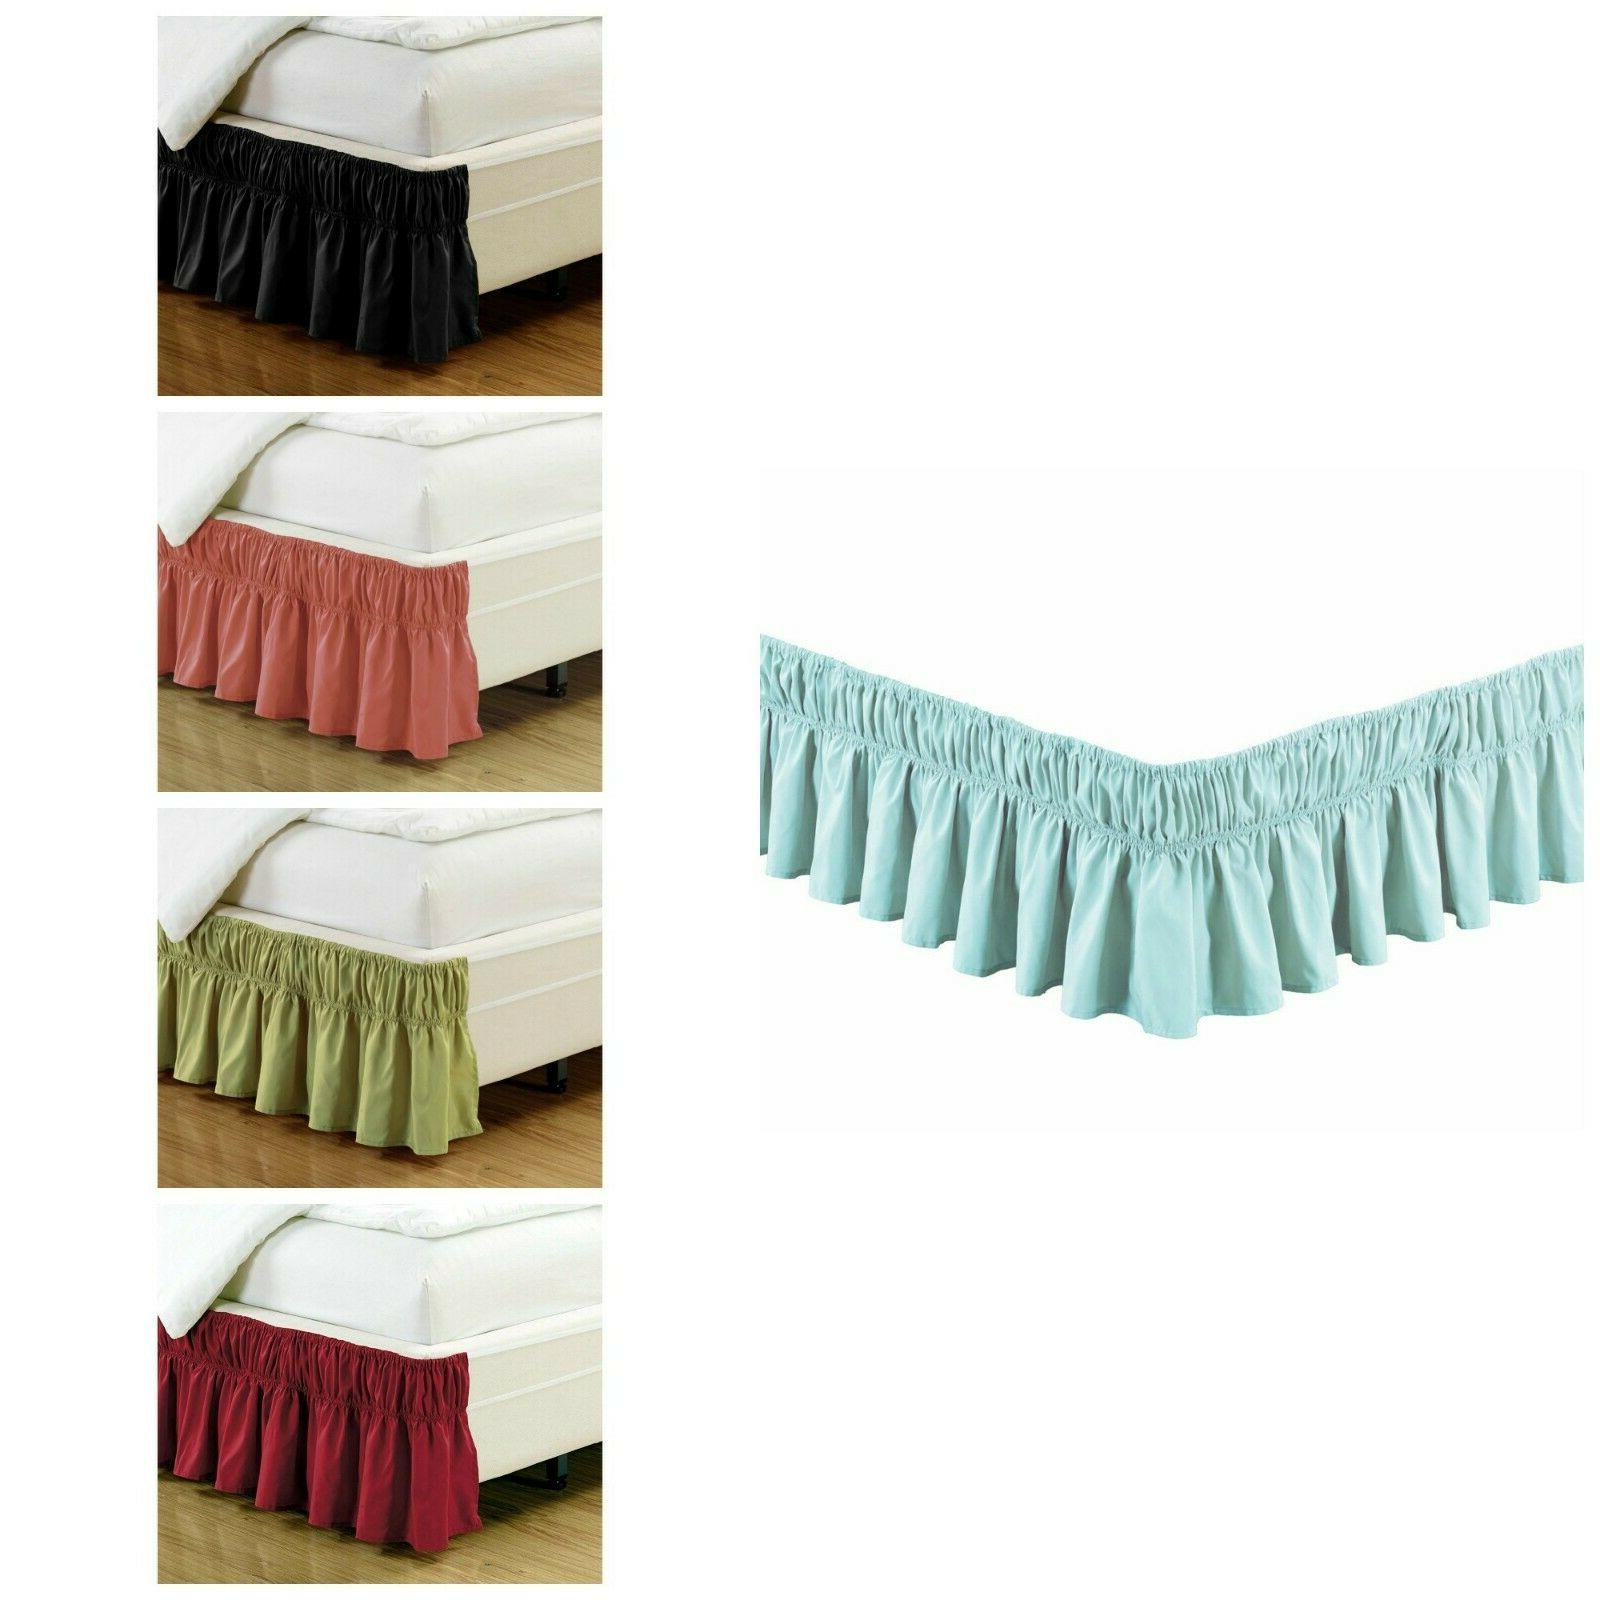 Ruffled Elastic Solid Bed Skirt Silky Soft 14 inch Fall Micr